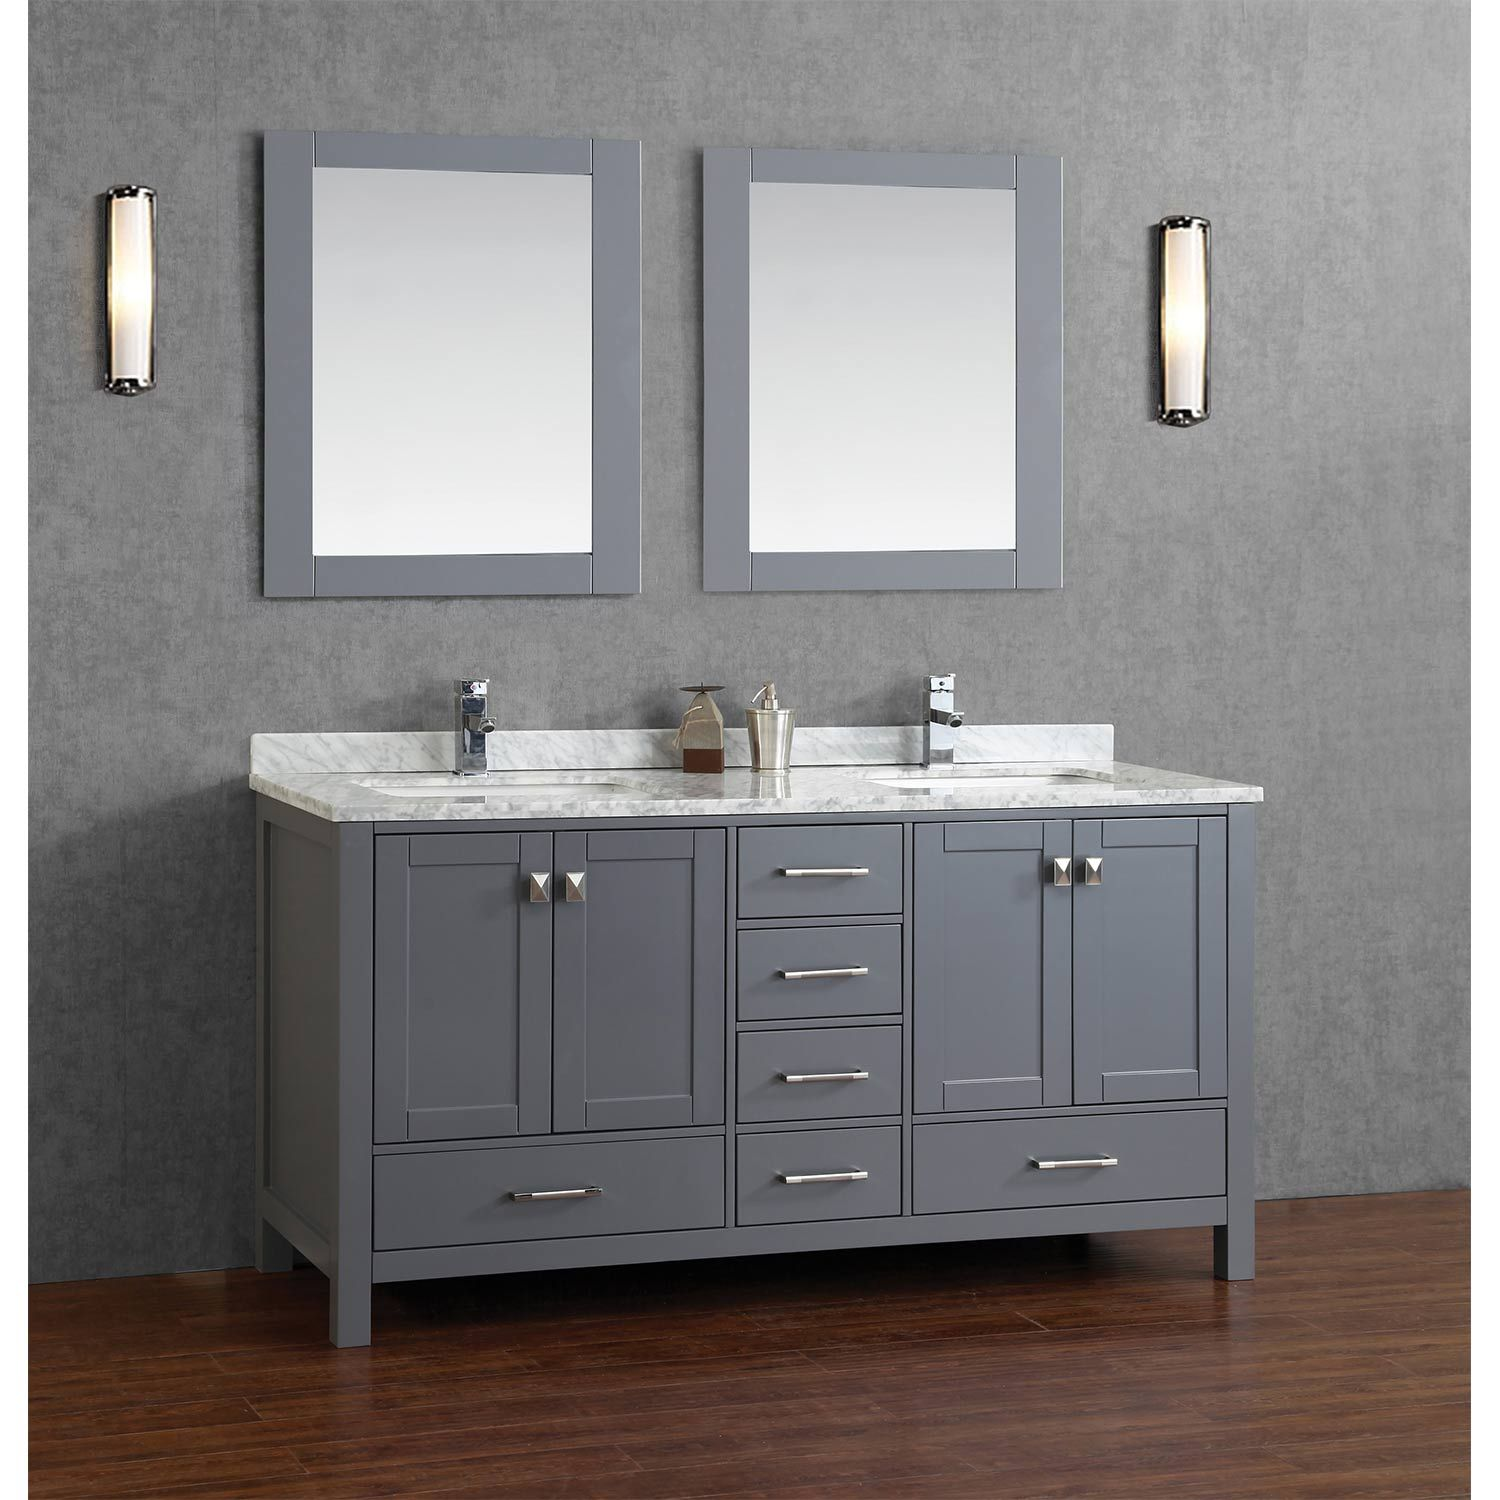 vincent inch hd bathroom in wmsq wood single buy vanities grey cg solid hm charcoal vanity